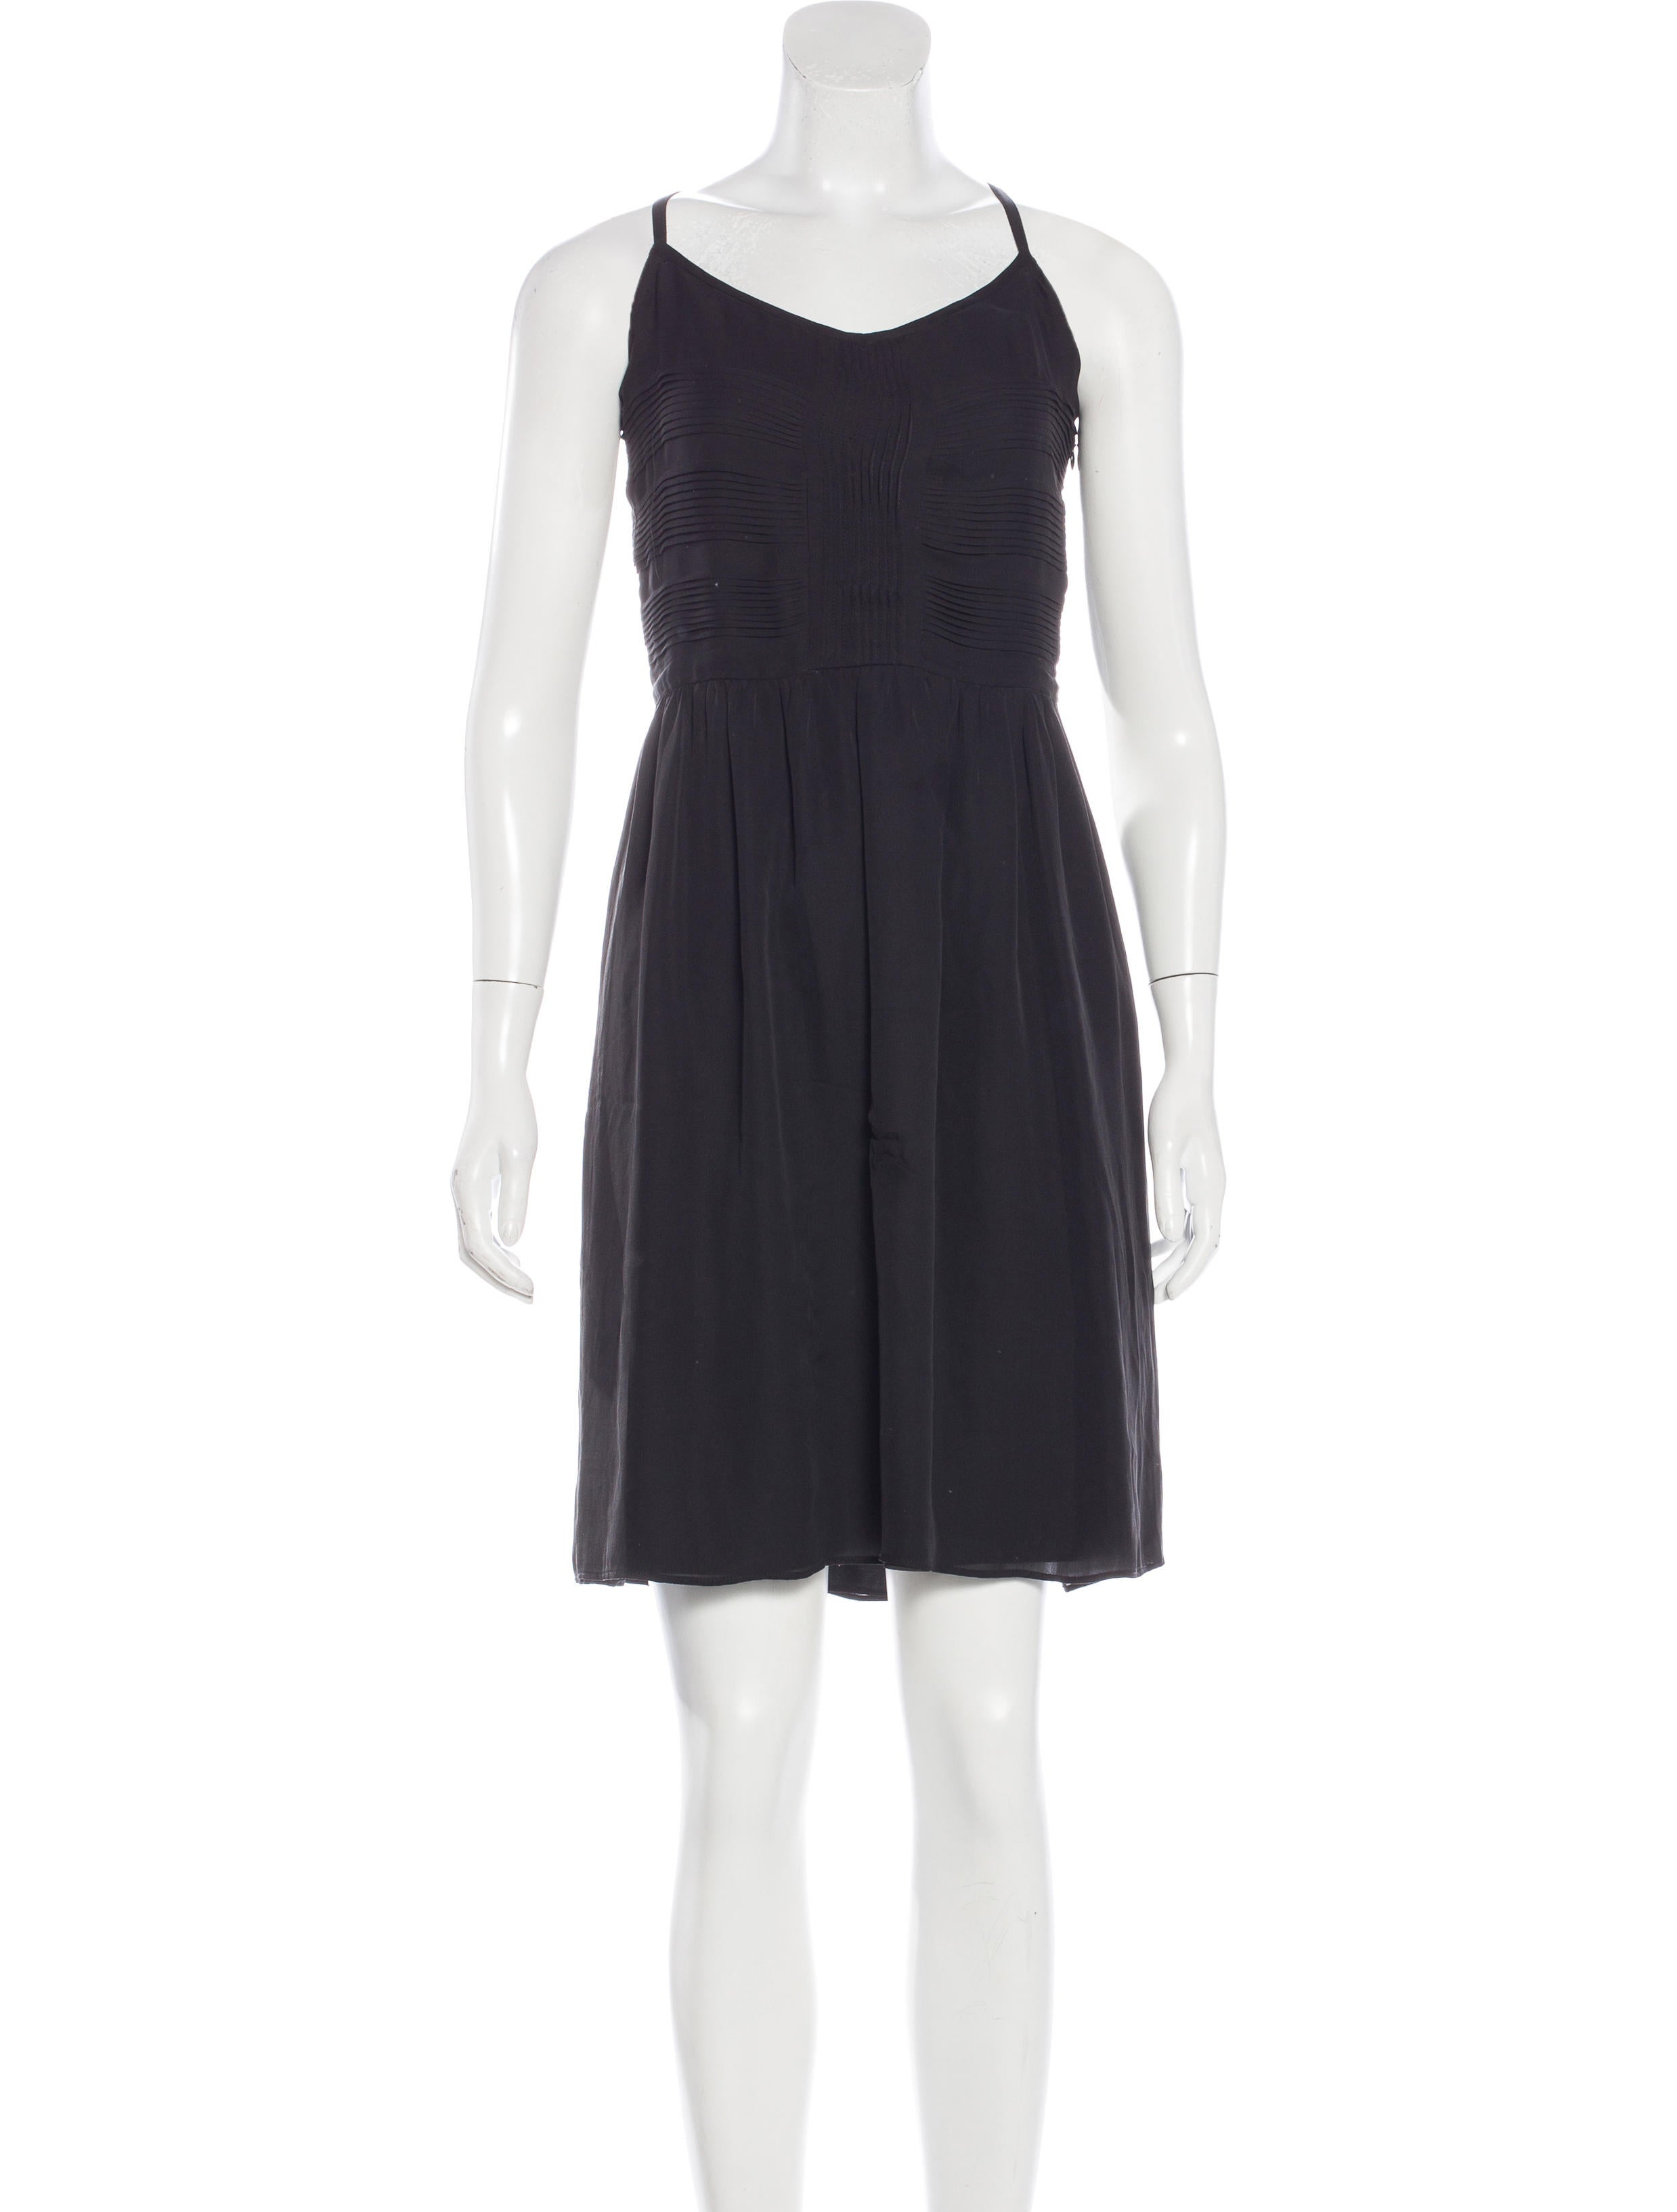 Derek lam 10 crosby silk pleated dress clothing for Derek lam 10 crosby shirt dress